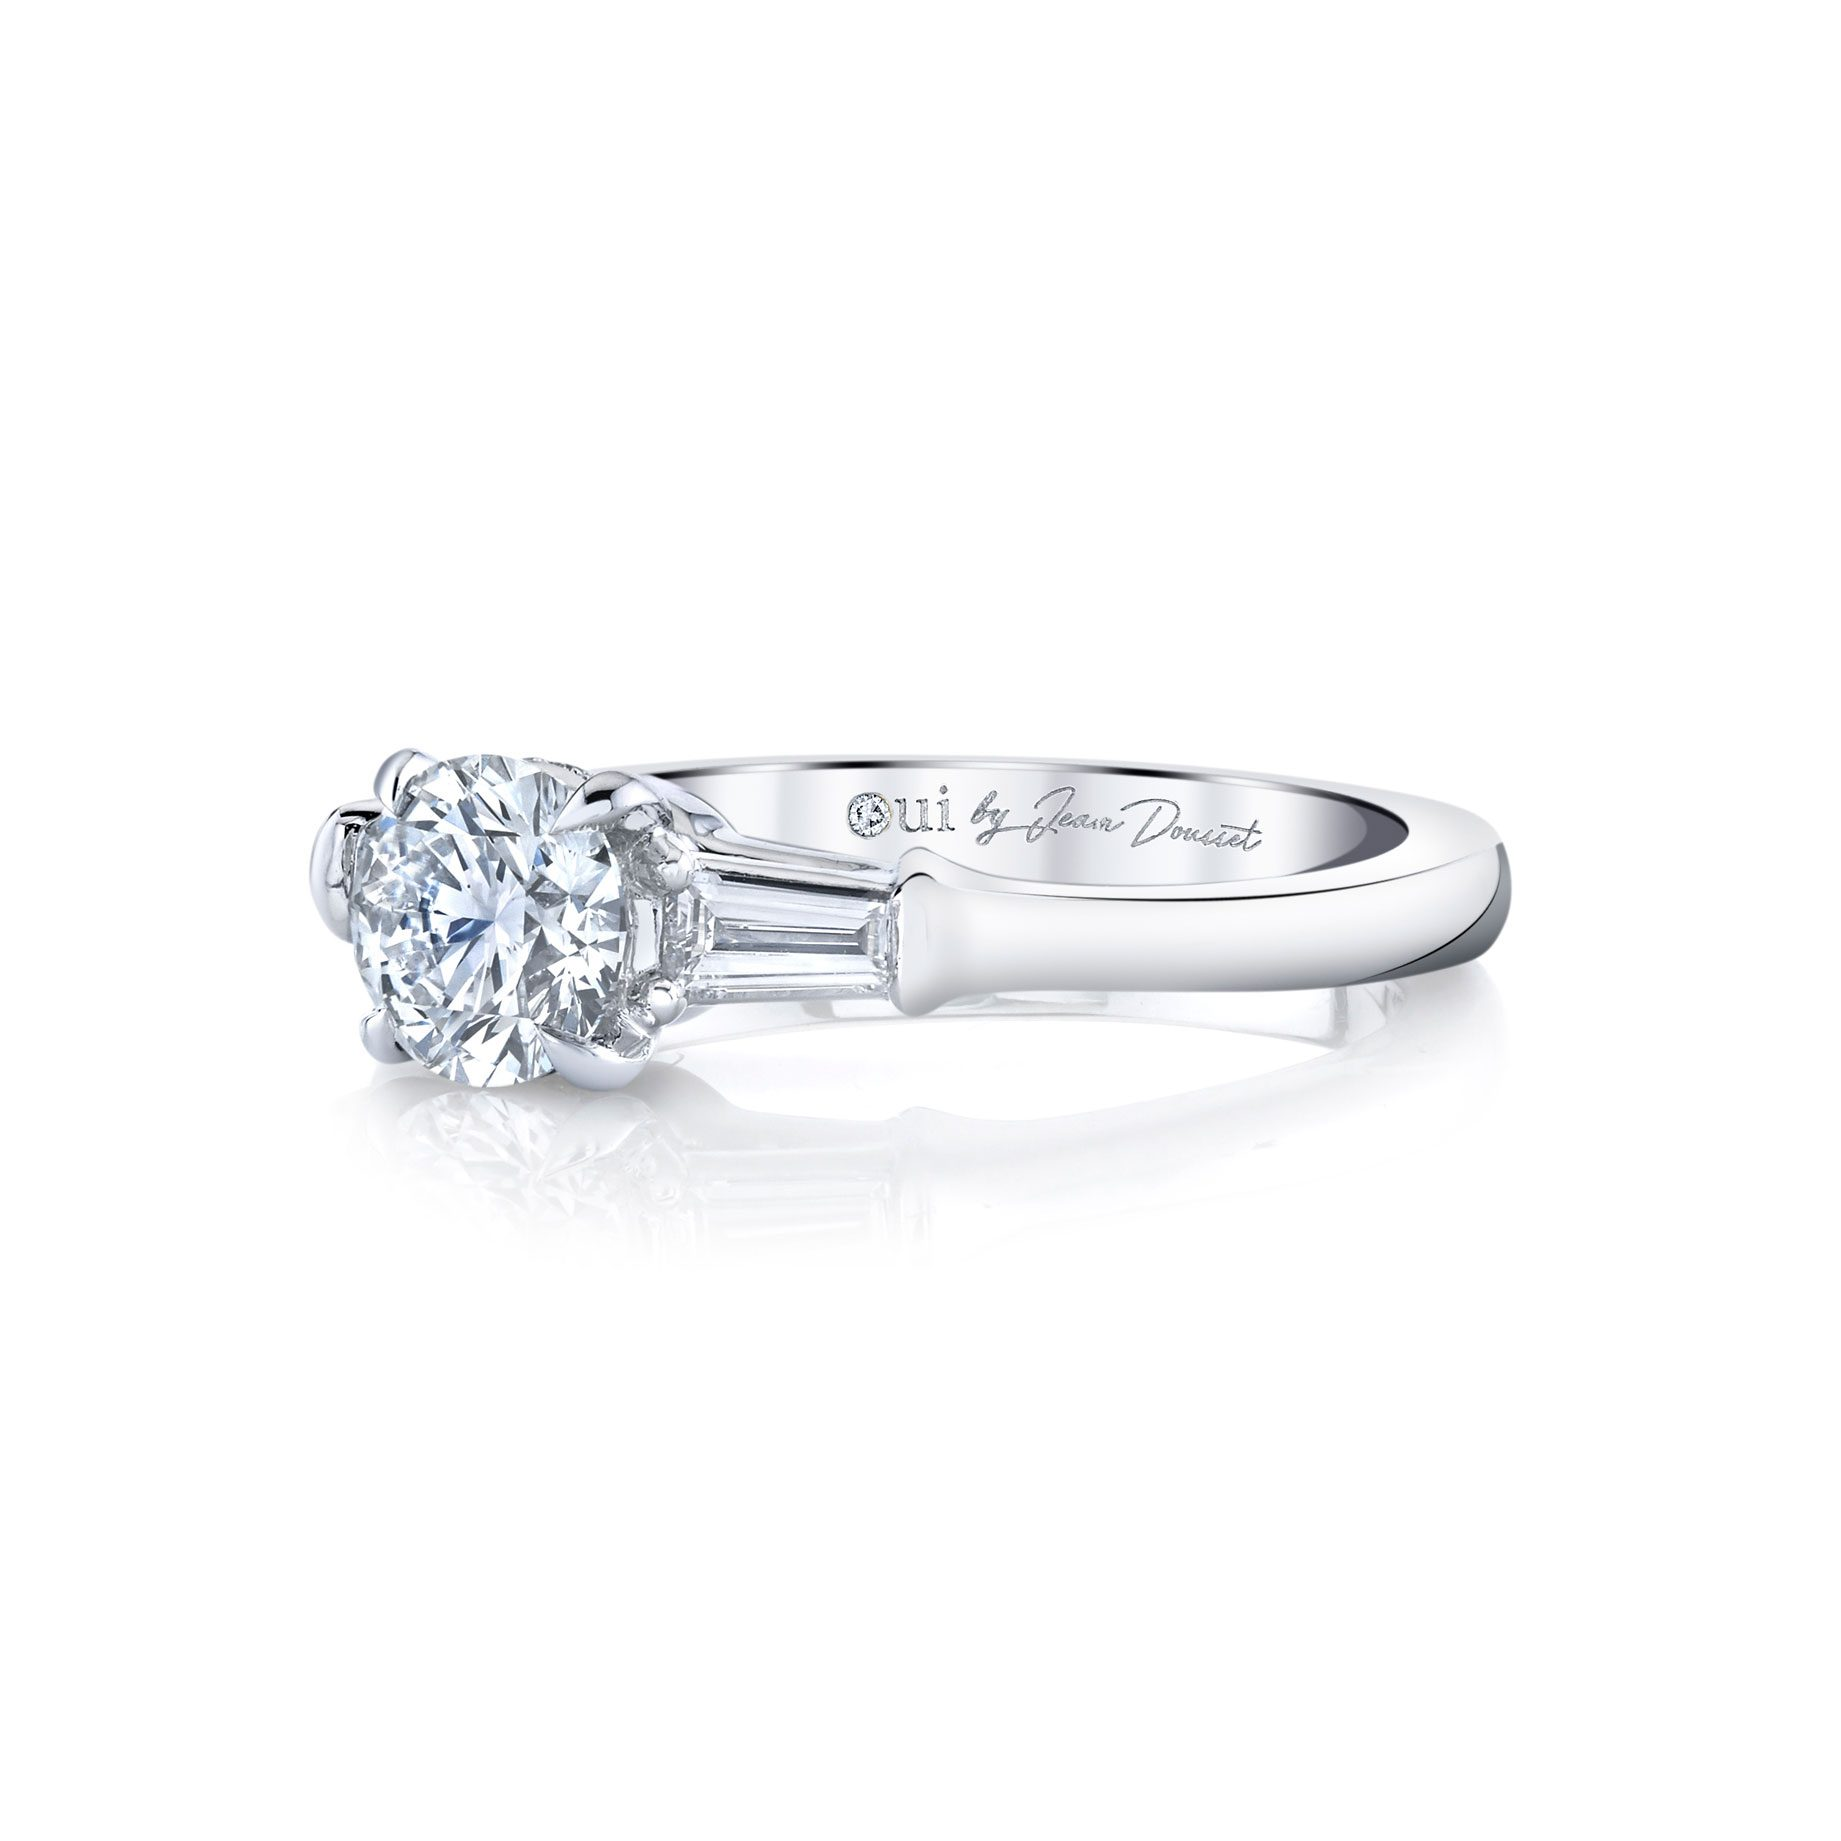 Claire Round Brilliant Three Stone Engagement Ring with tapered baguette diamond side stones in 18k White Gold Side View by Oui by Jean Dousset